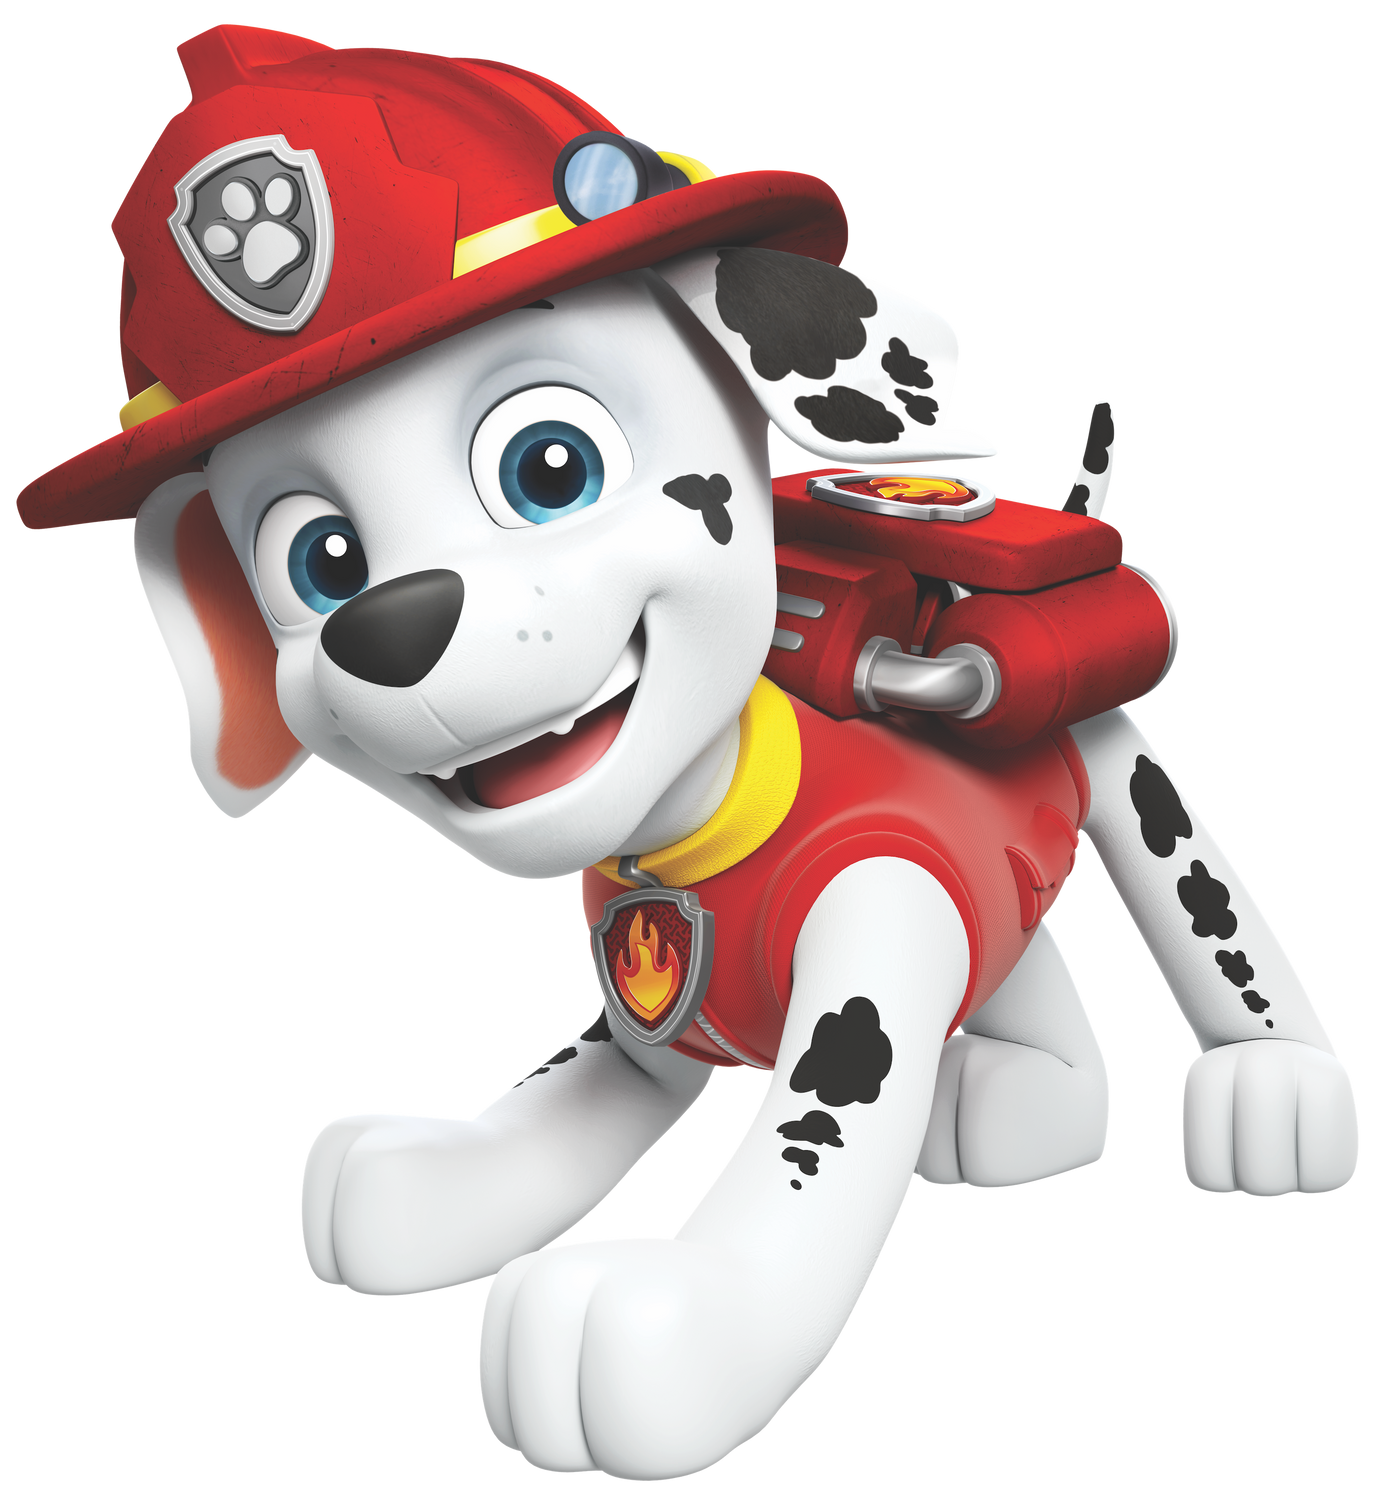 paw patrol's marshall  paw patrol  friends  official site